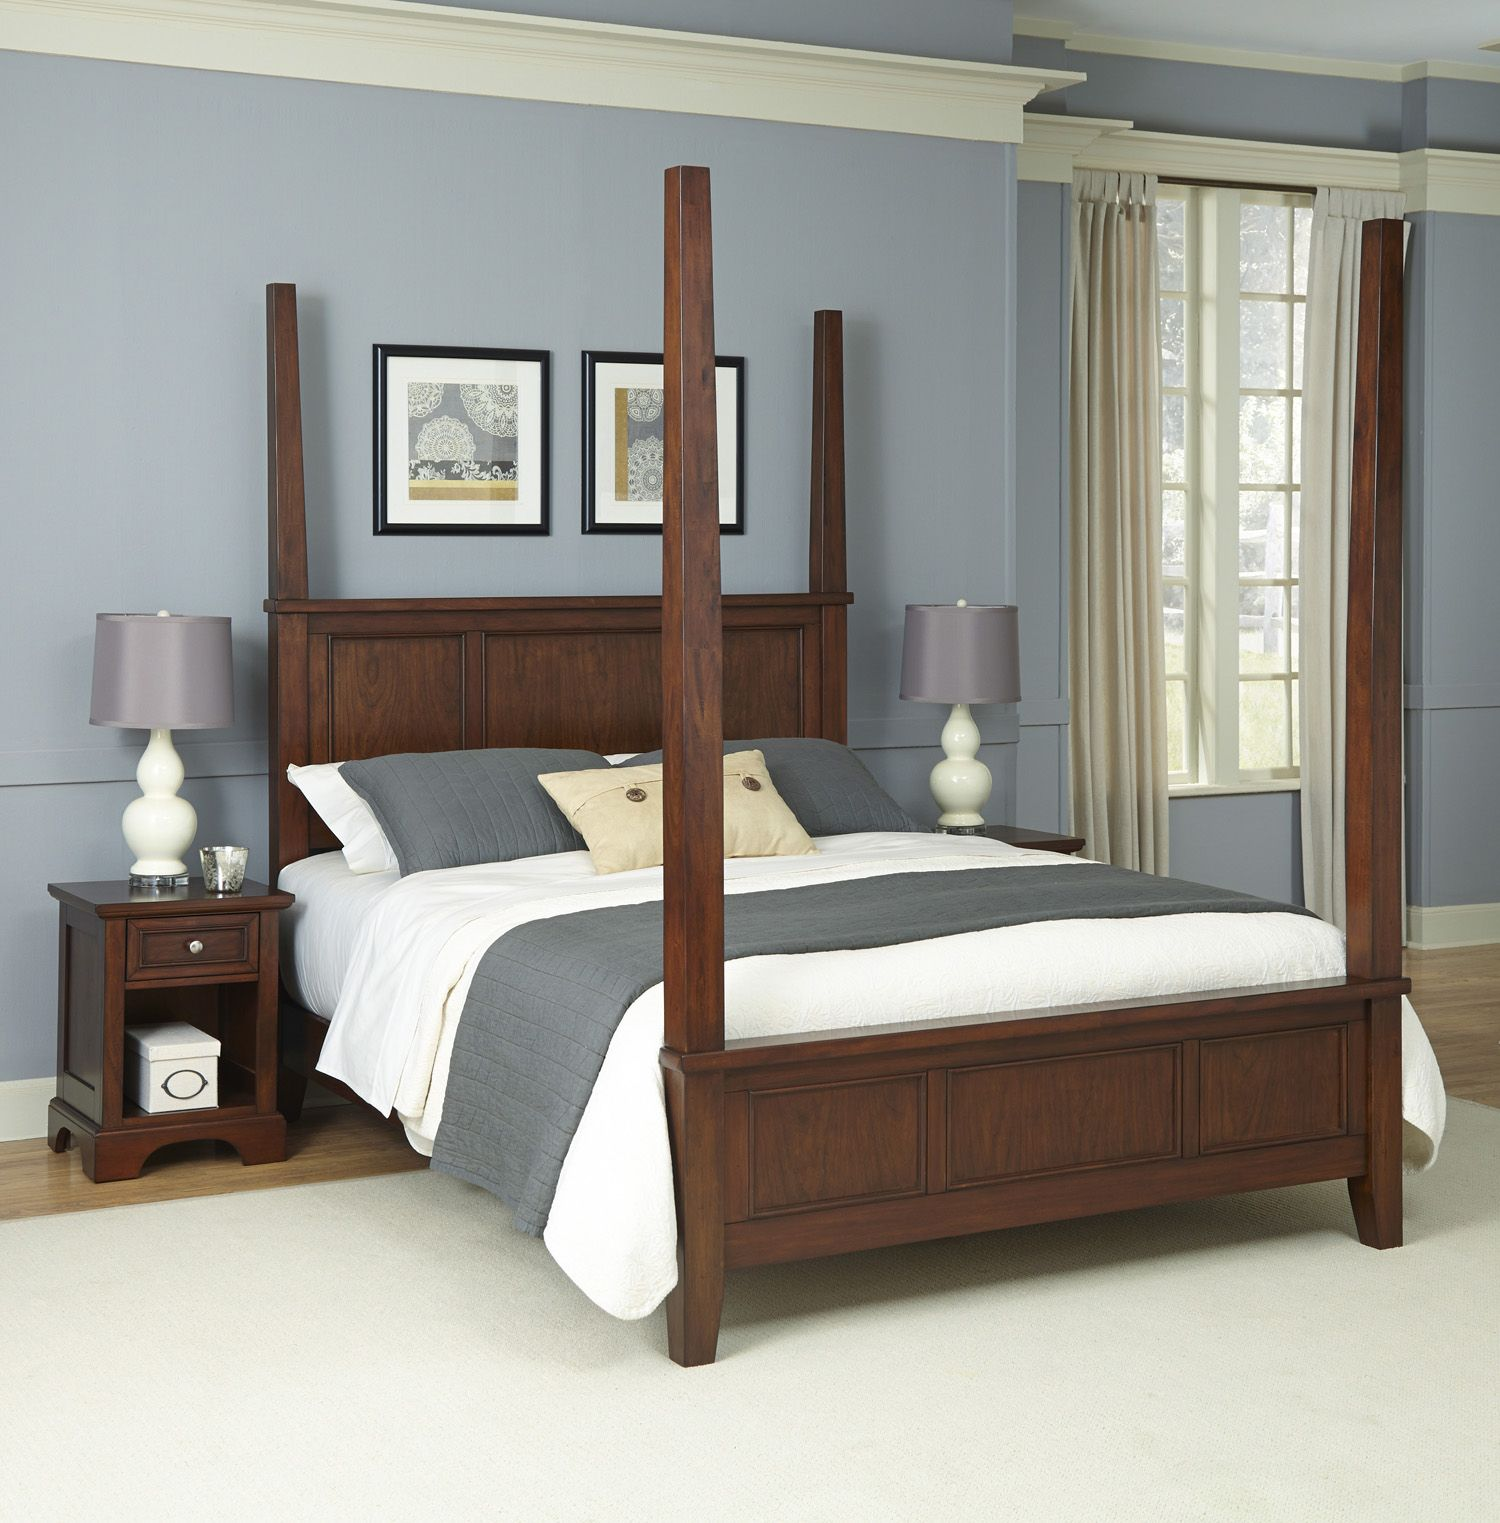 Unique Home Styles piece Chesapeake Nightstands and Poster Bedroom Set